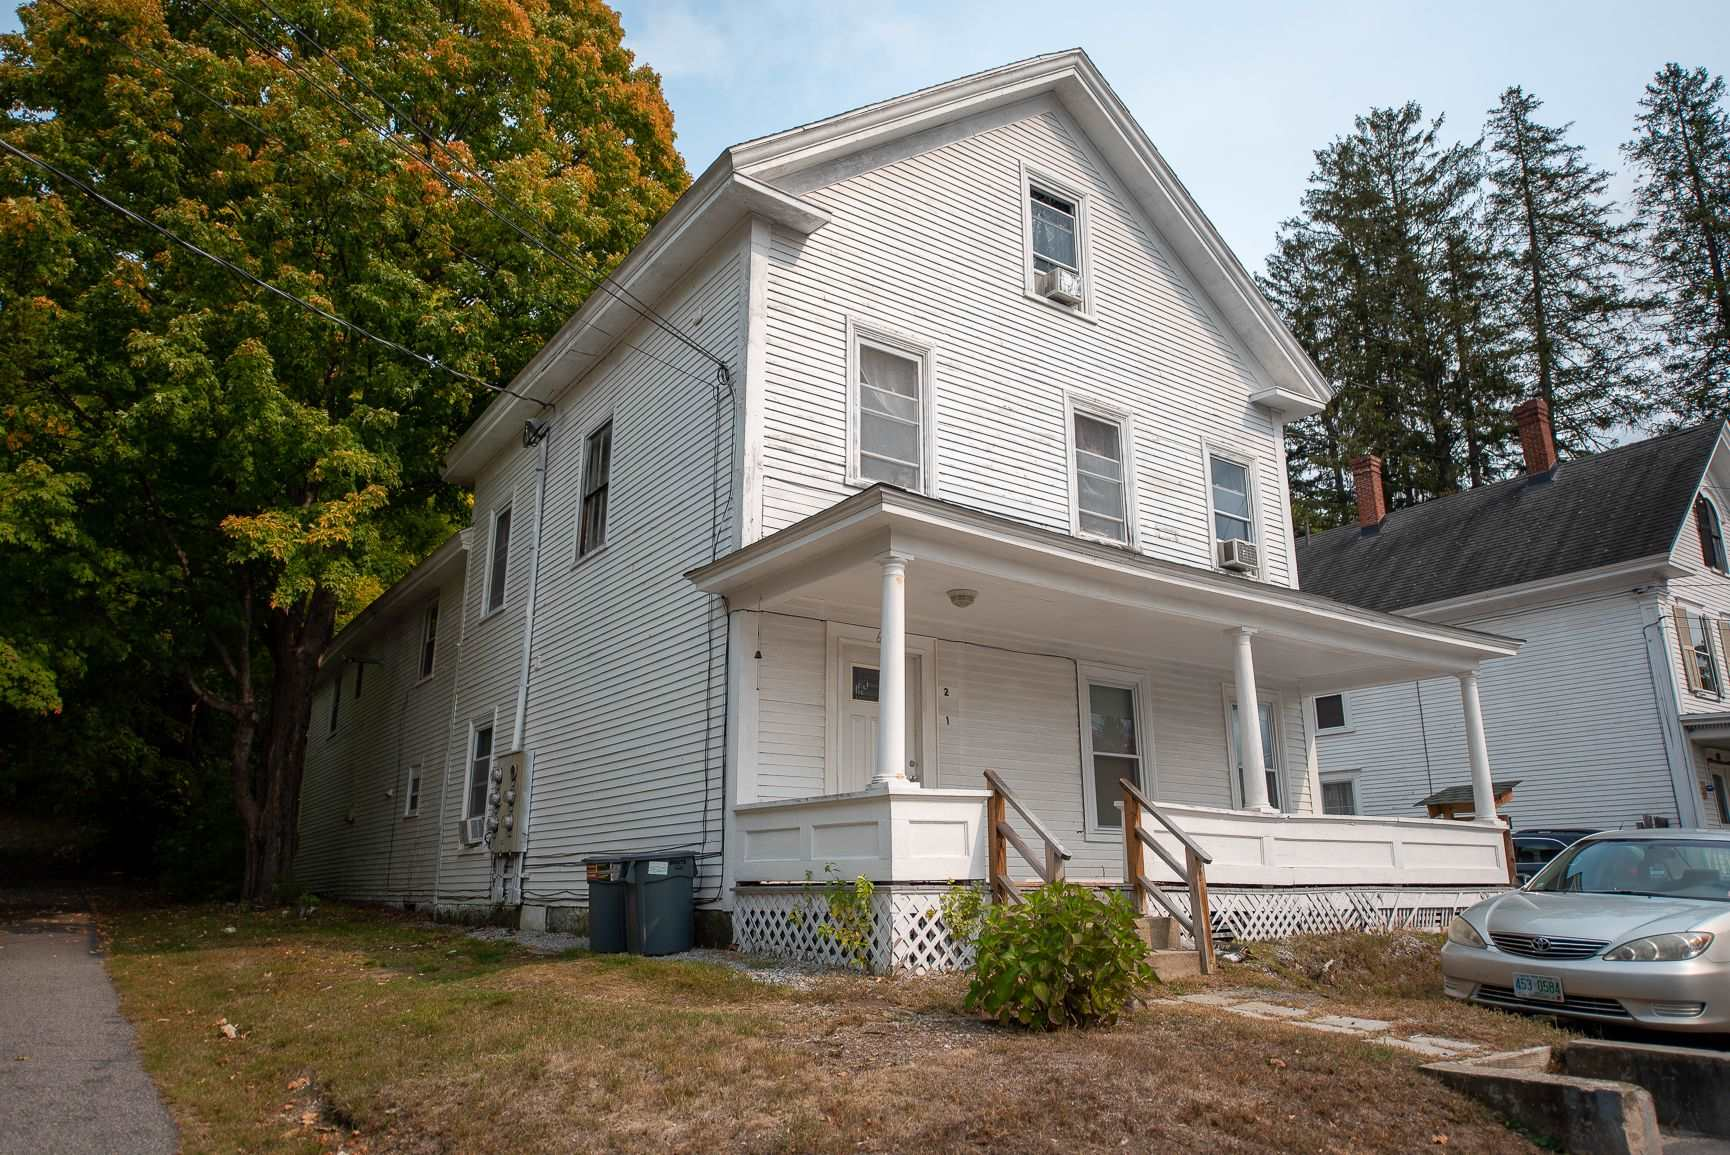 MLS 4832862: 66 School Street, Bristol NH